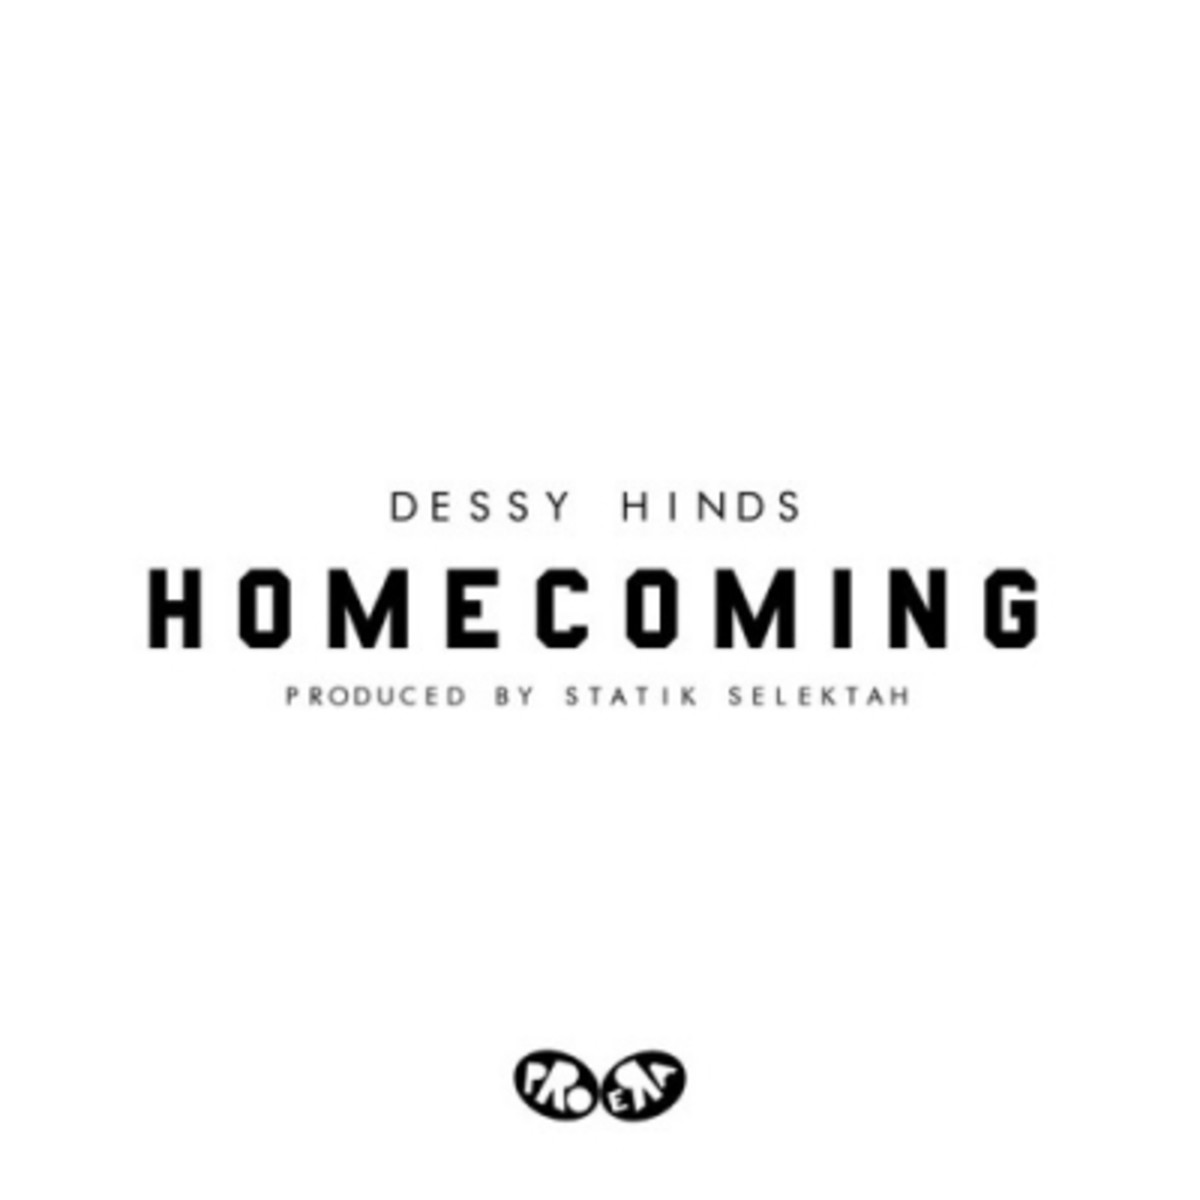 dessy-hinds-homecoming.jpg